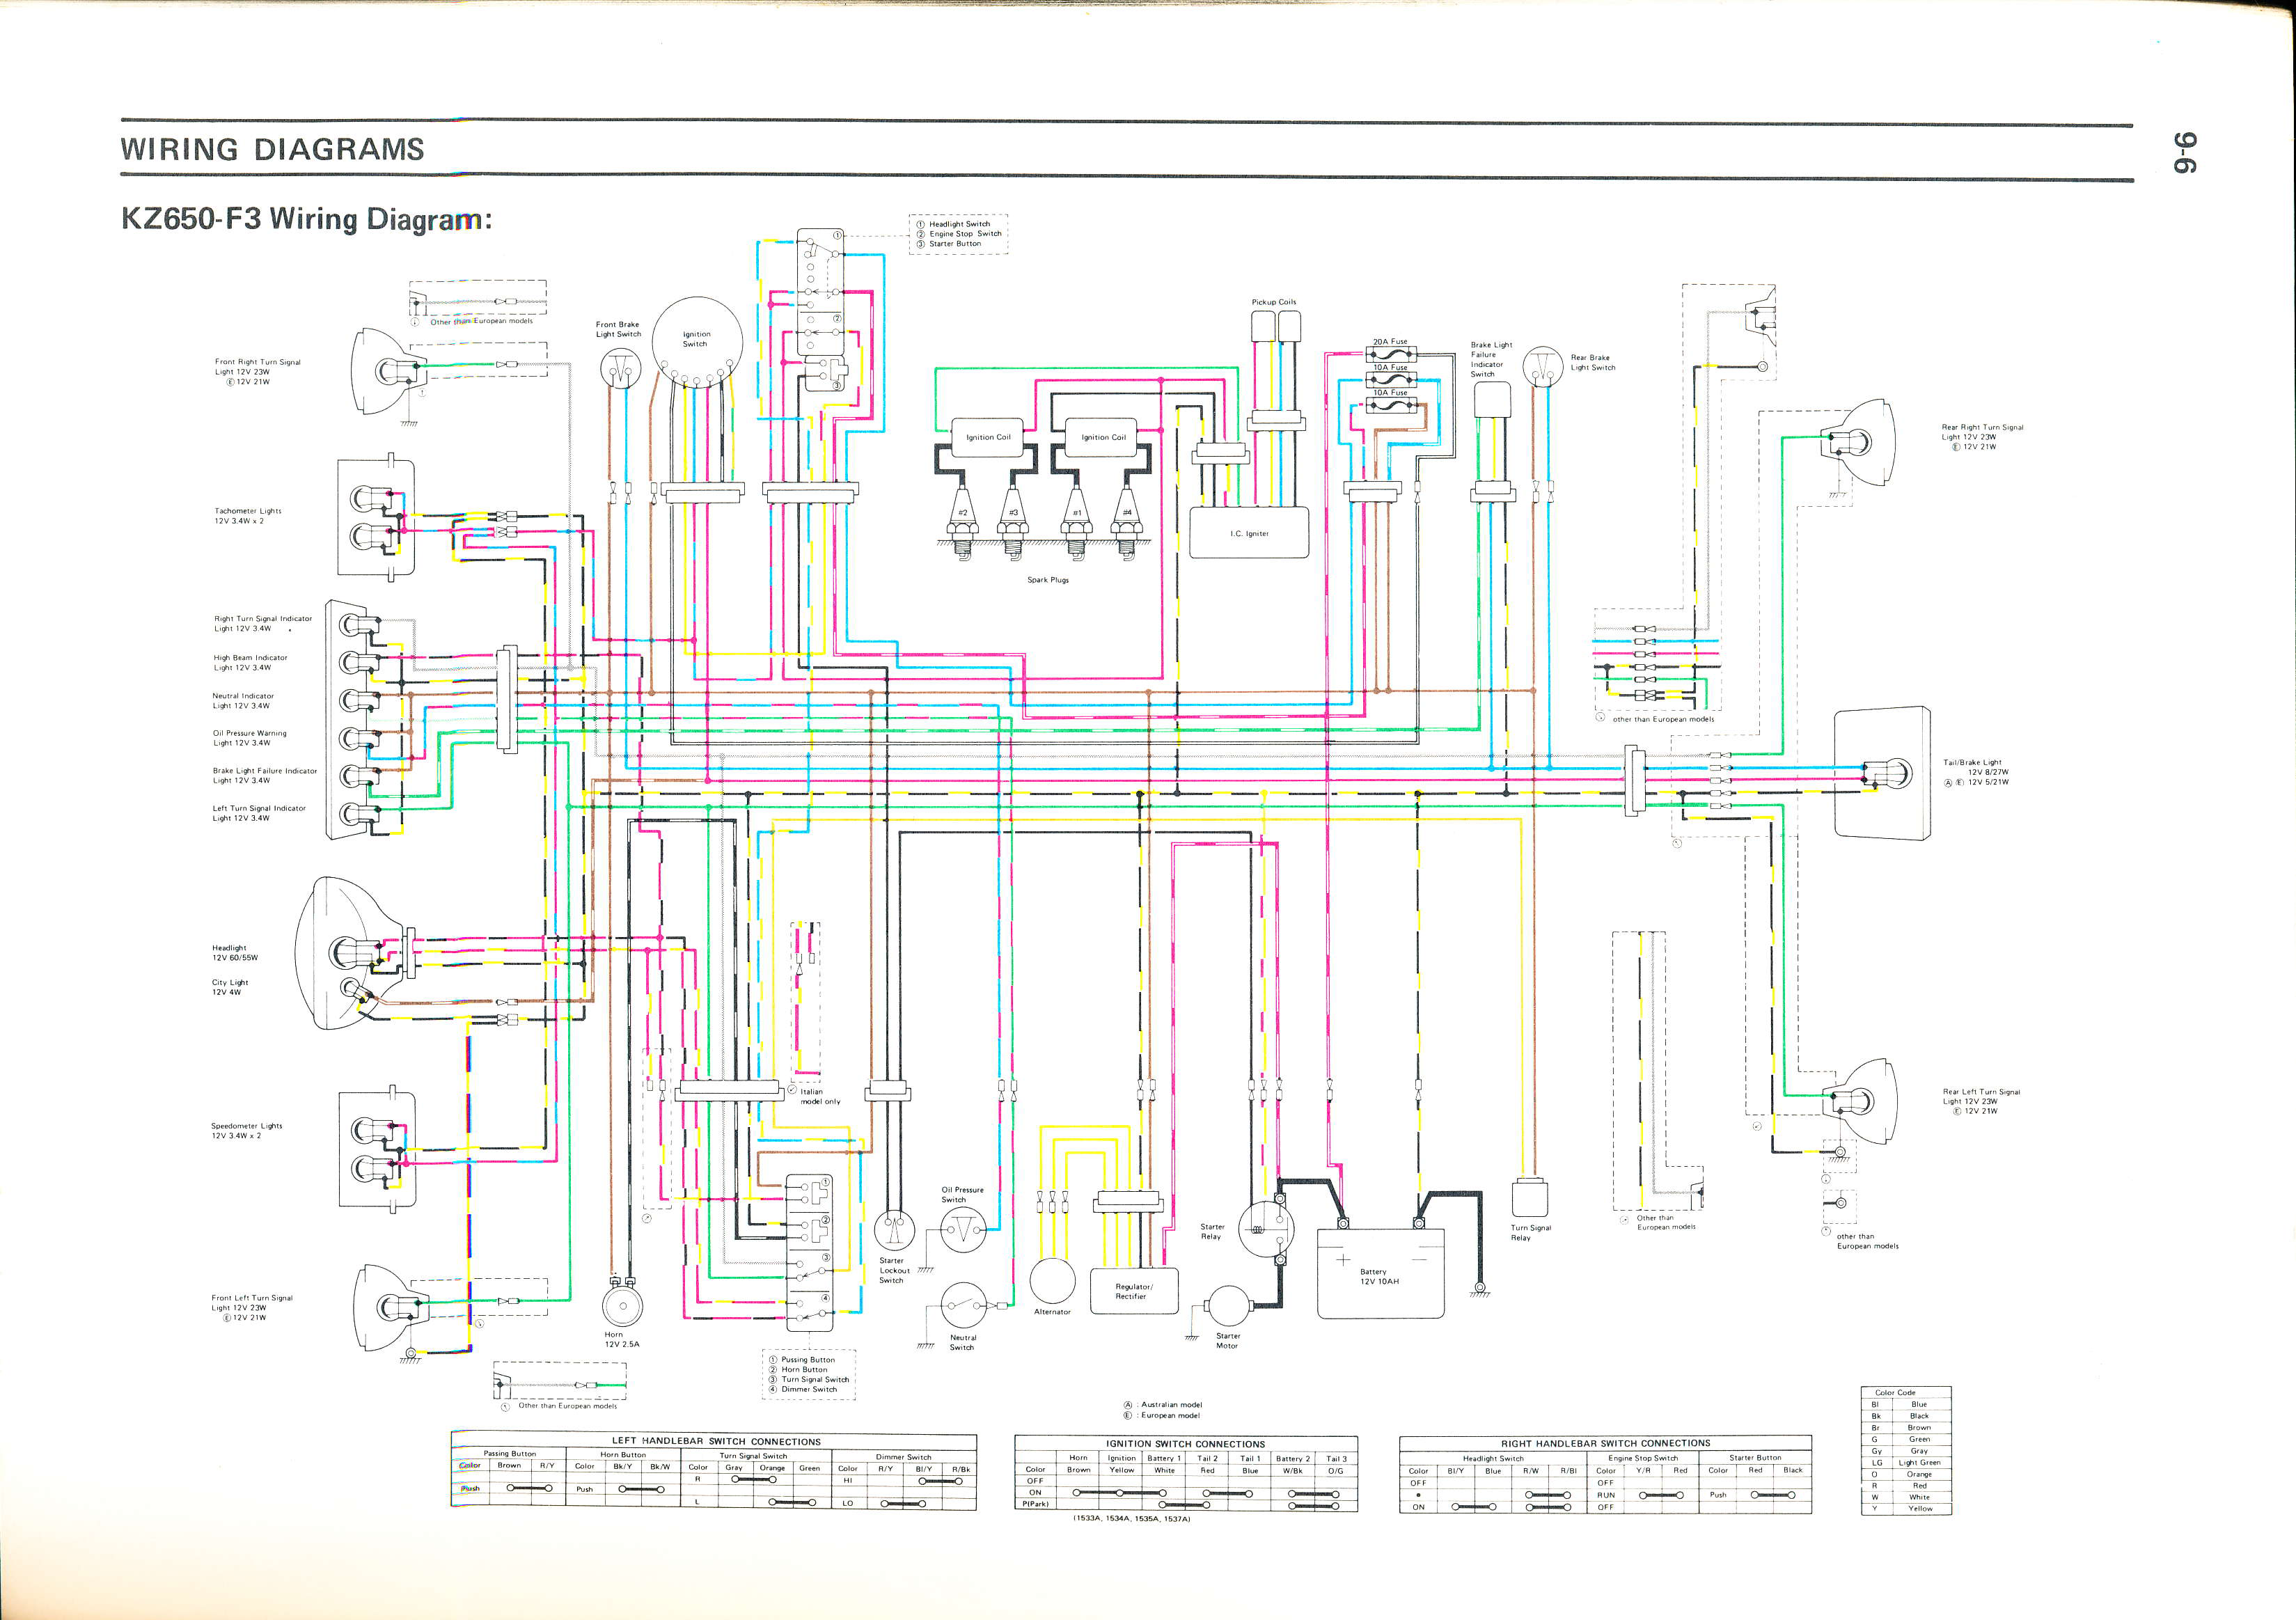 OEM Service Manual KZ650 F3 wiring diagrams z650 wiring diagram at reclaimingppi.co